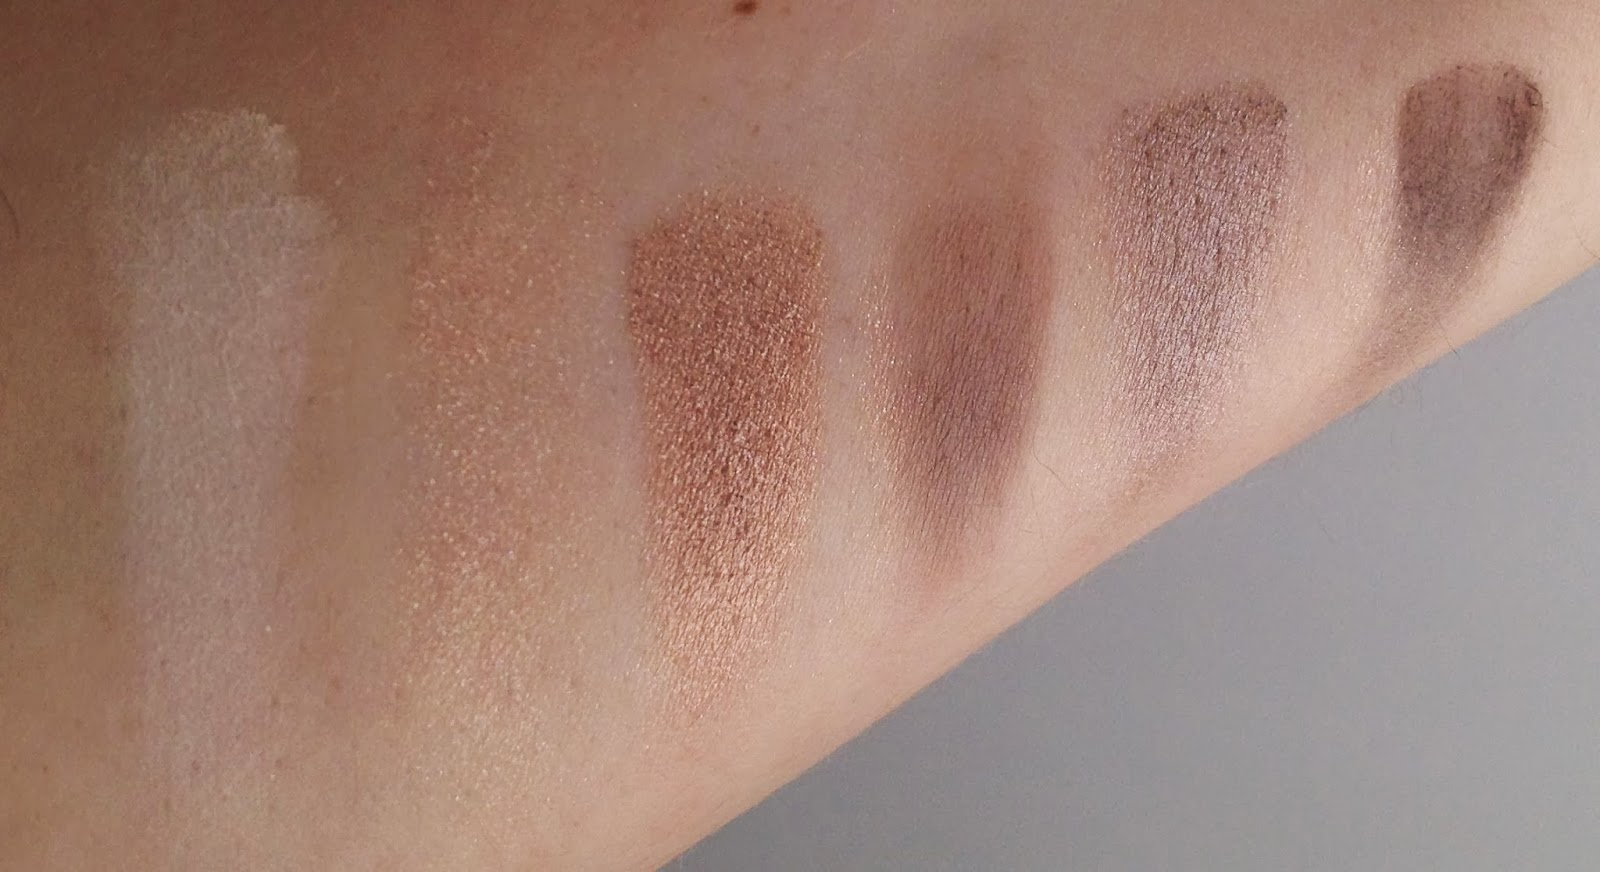 Sephora It Palette - Nude eyeshadow collection swatches: Bottom row of palette